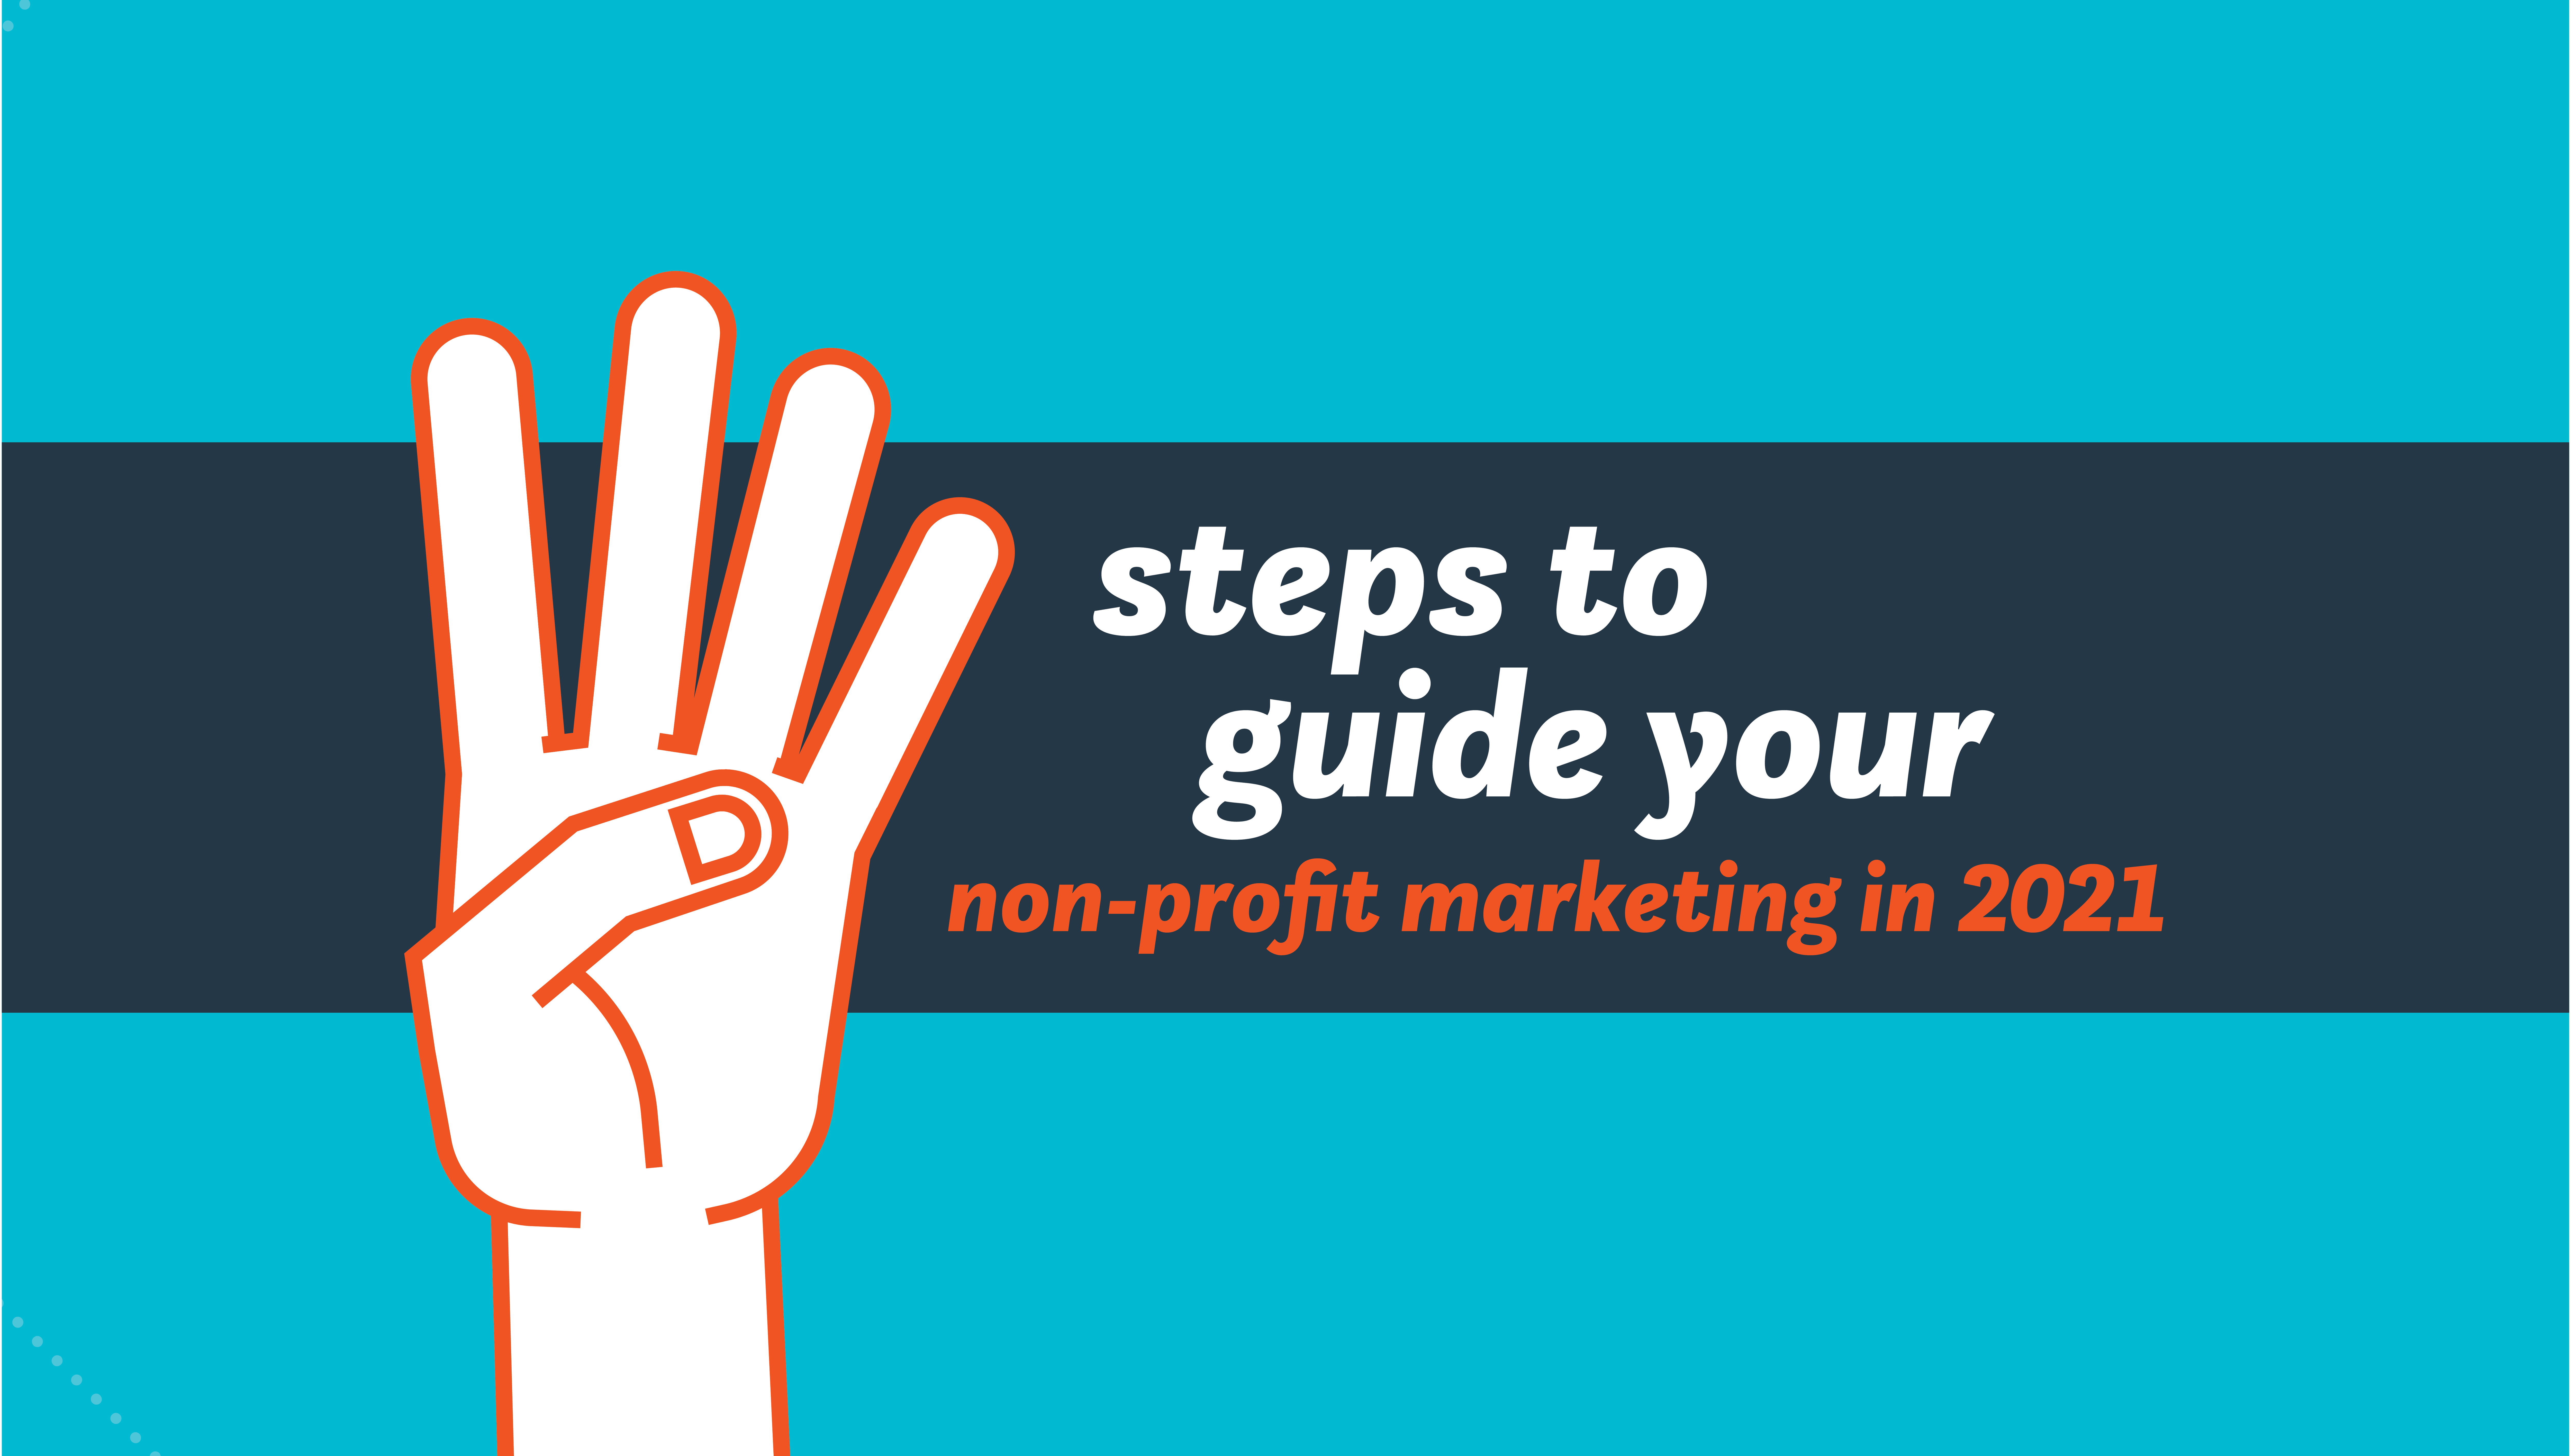 4 steps to guide your non-profit marketing in 2021